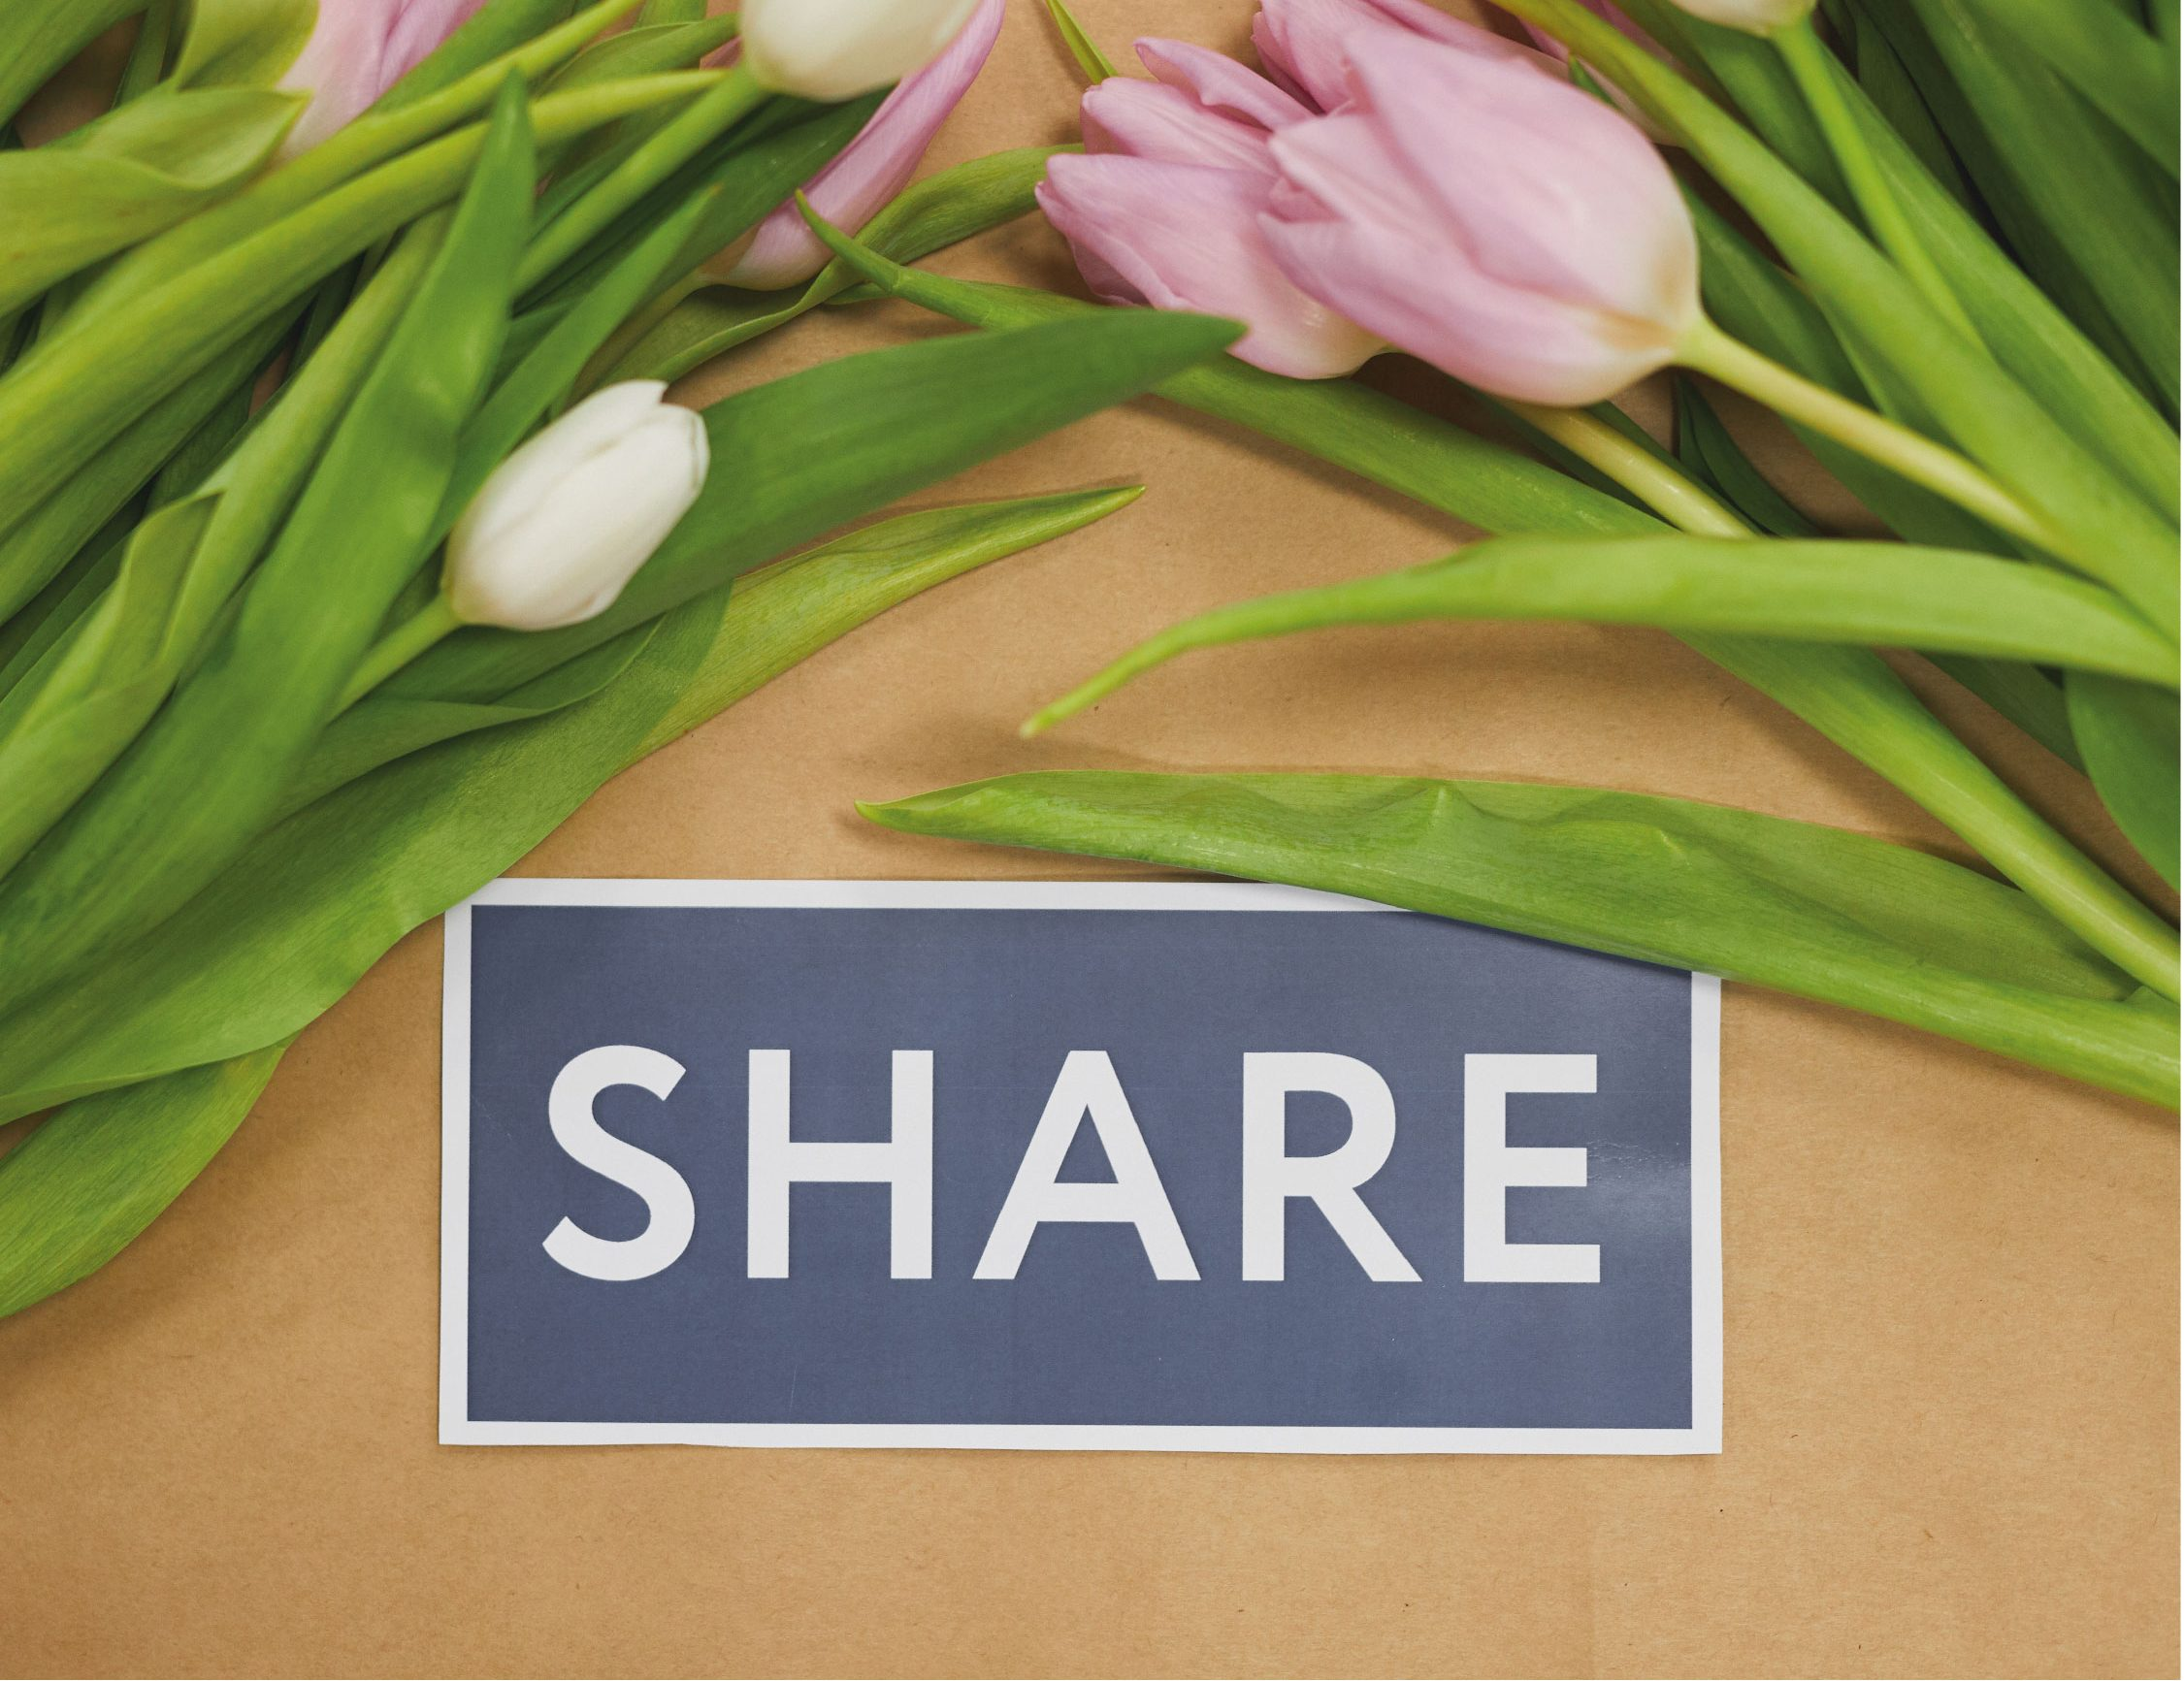 Blogs Allow Your Content To Be Shared Easily